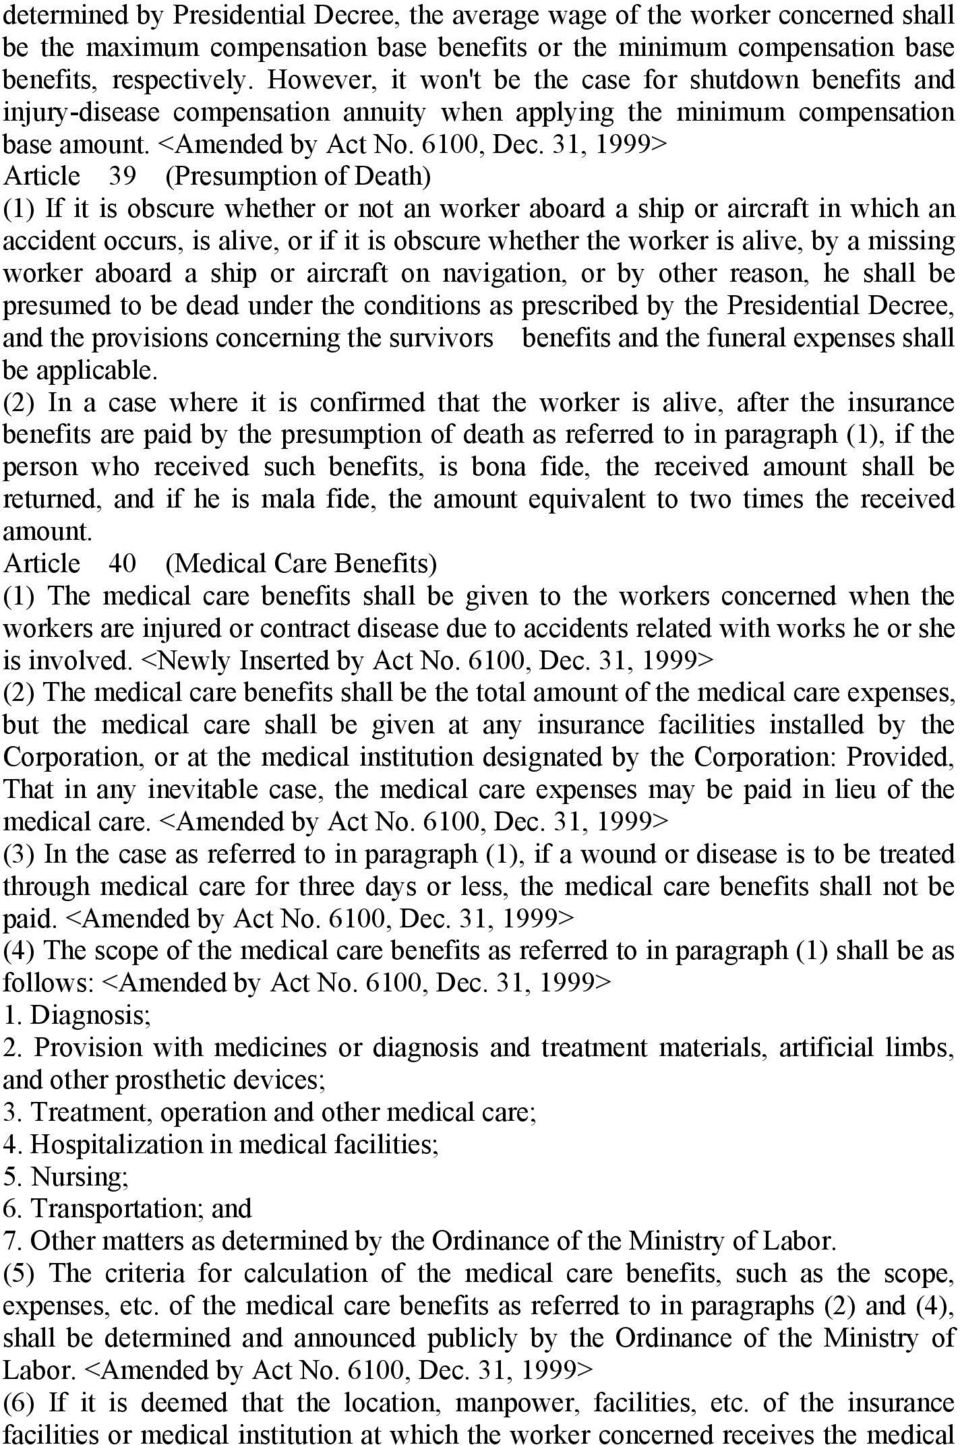 31, 1999> Article 39 (Presumption of Death) (1) If it is obscure whether or not an worker aboard a ship or aircraft in which an accident occurs, is alive, or if it is obscure whether the worker is